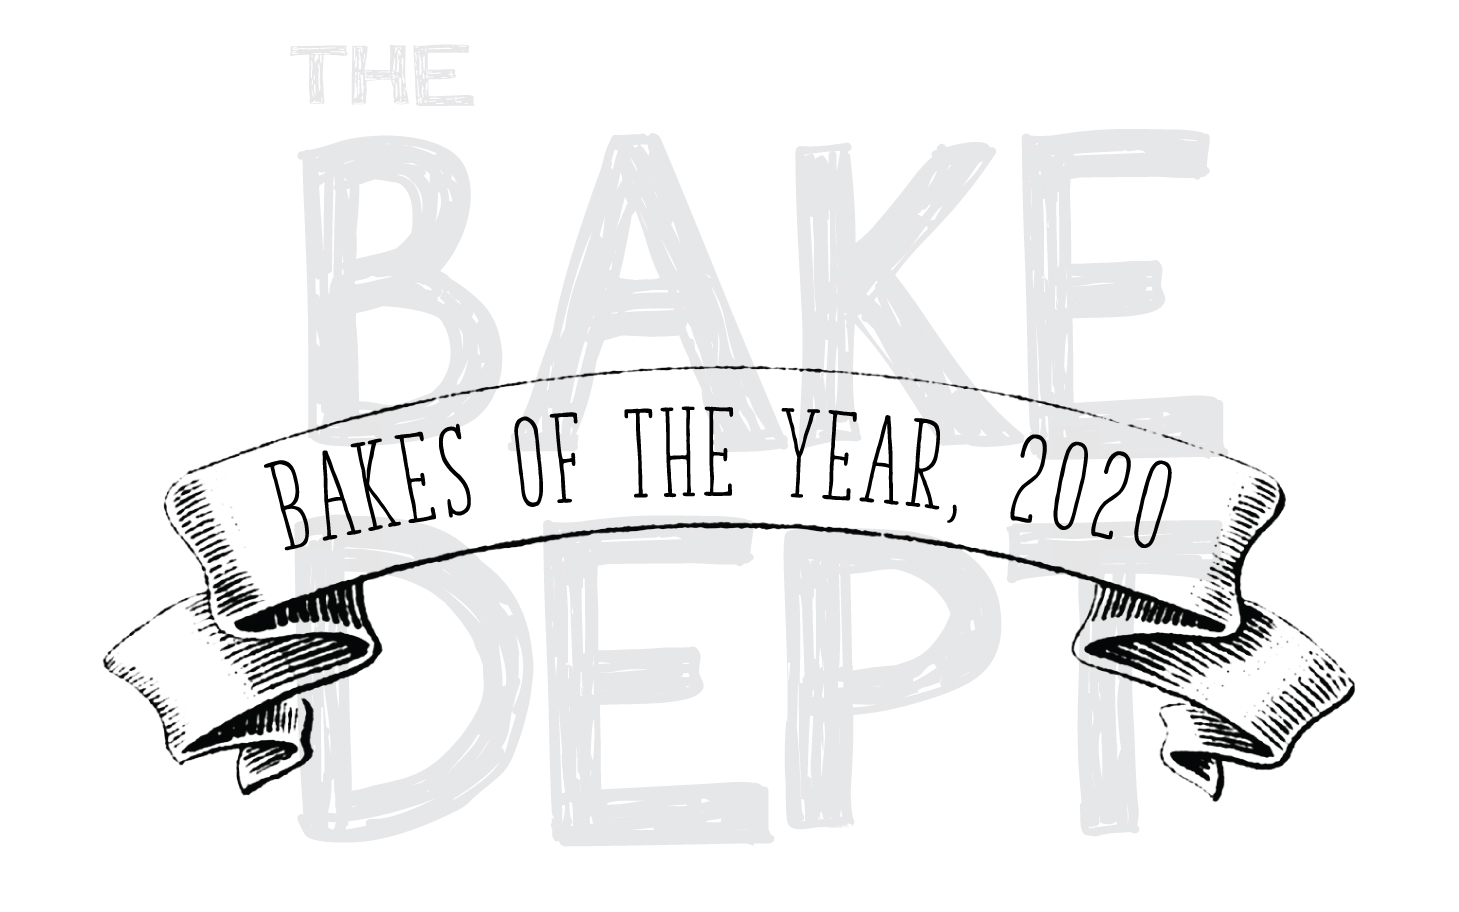 bakes of the year logo